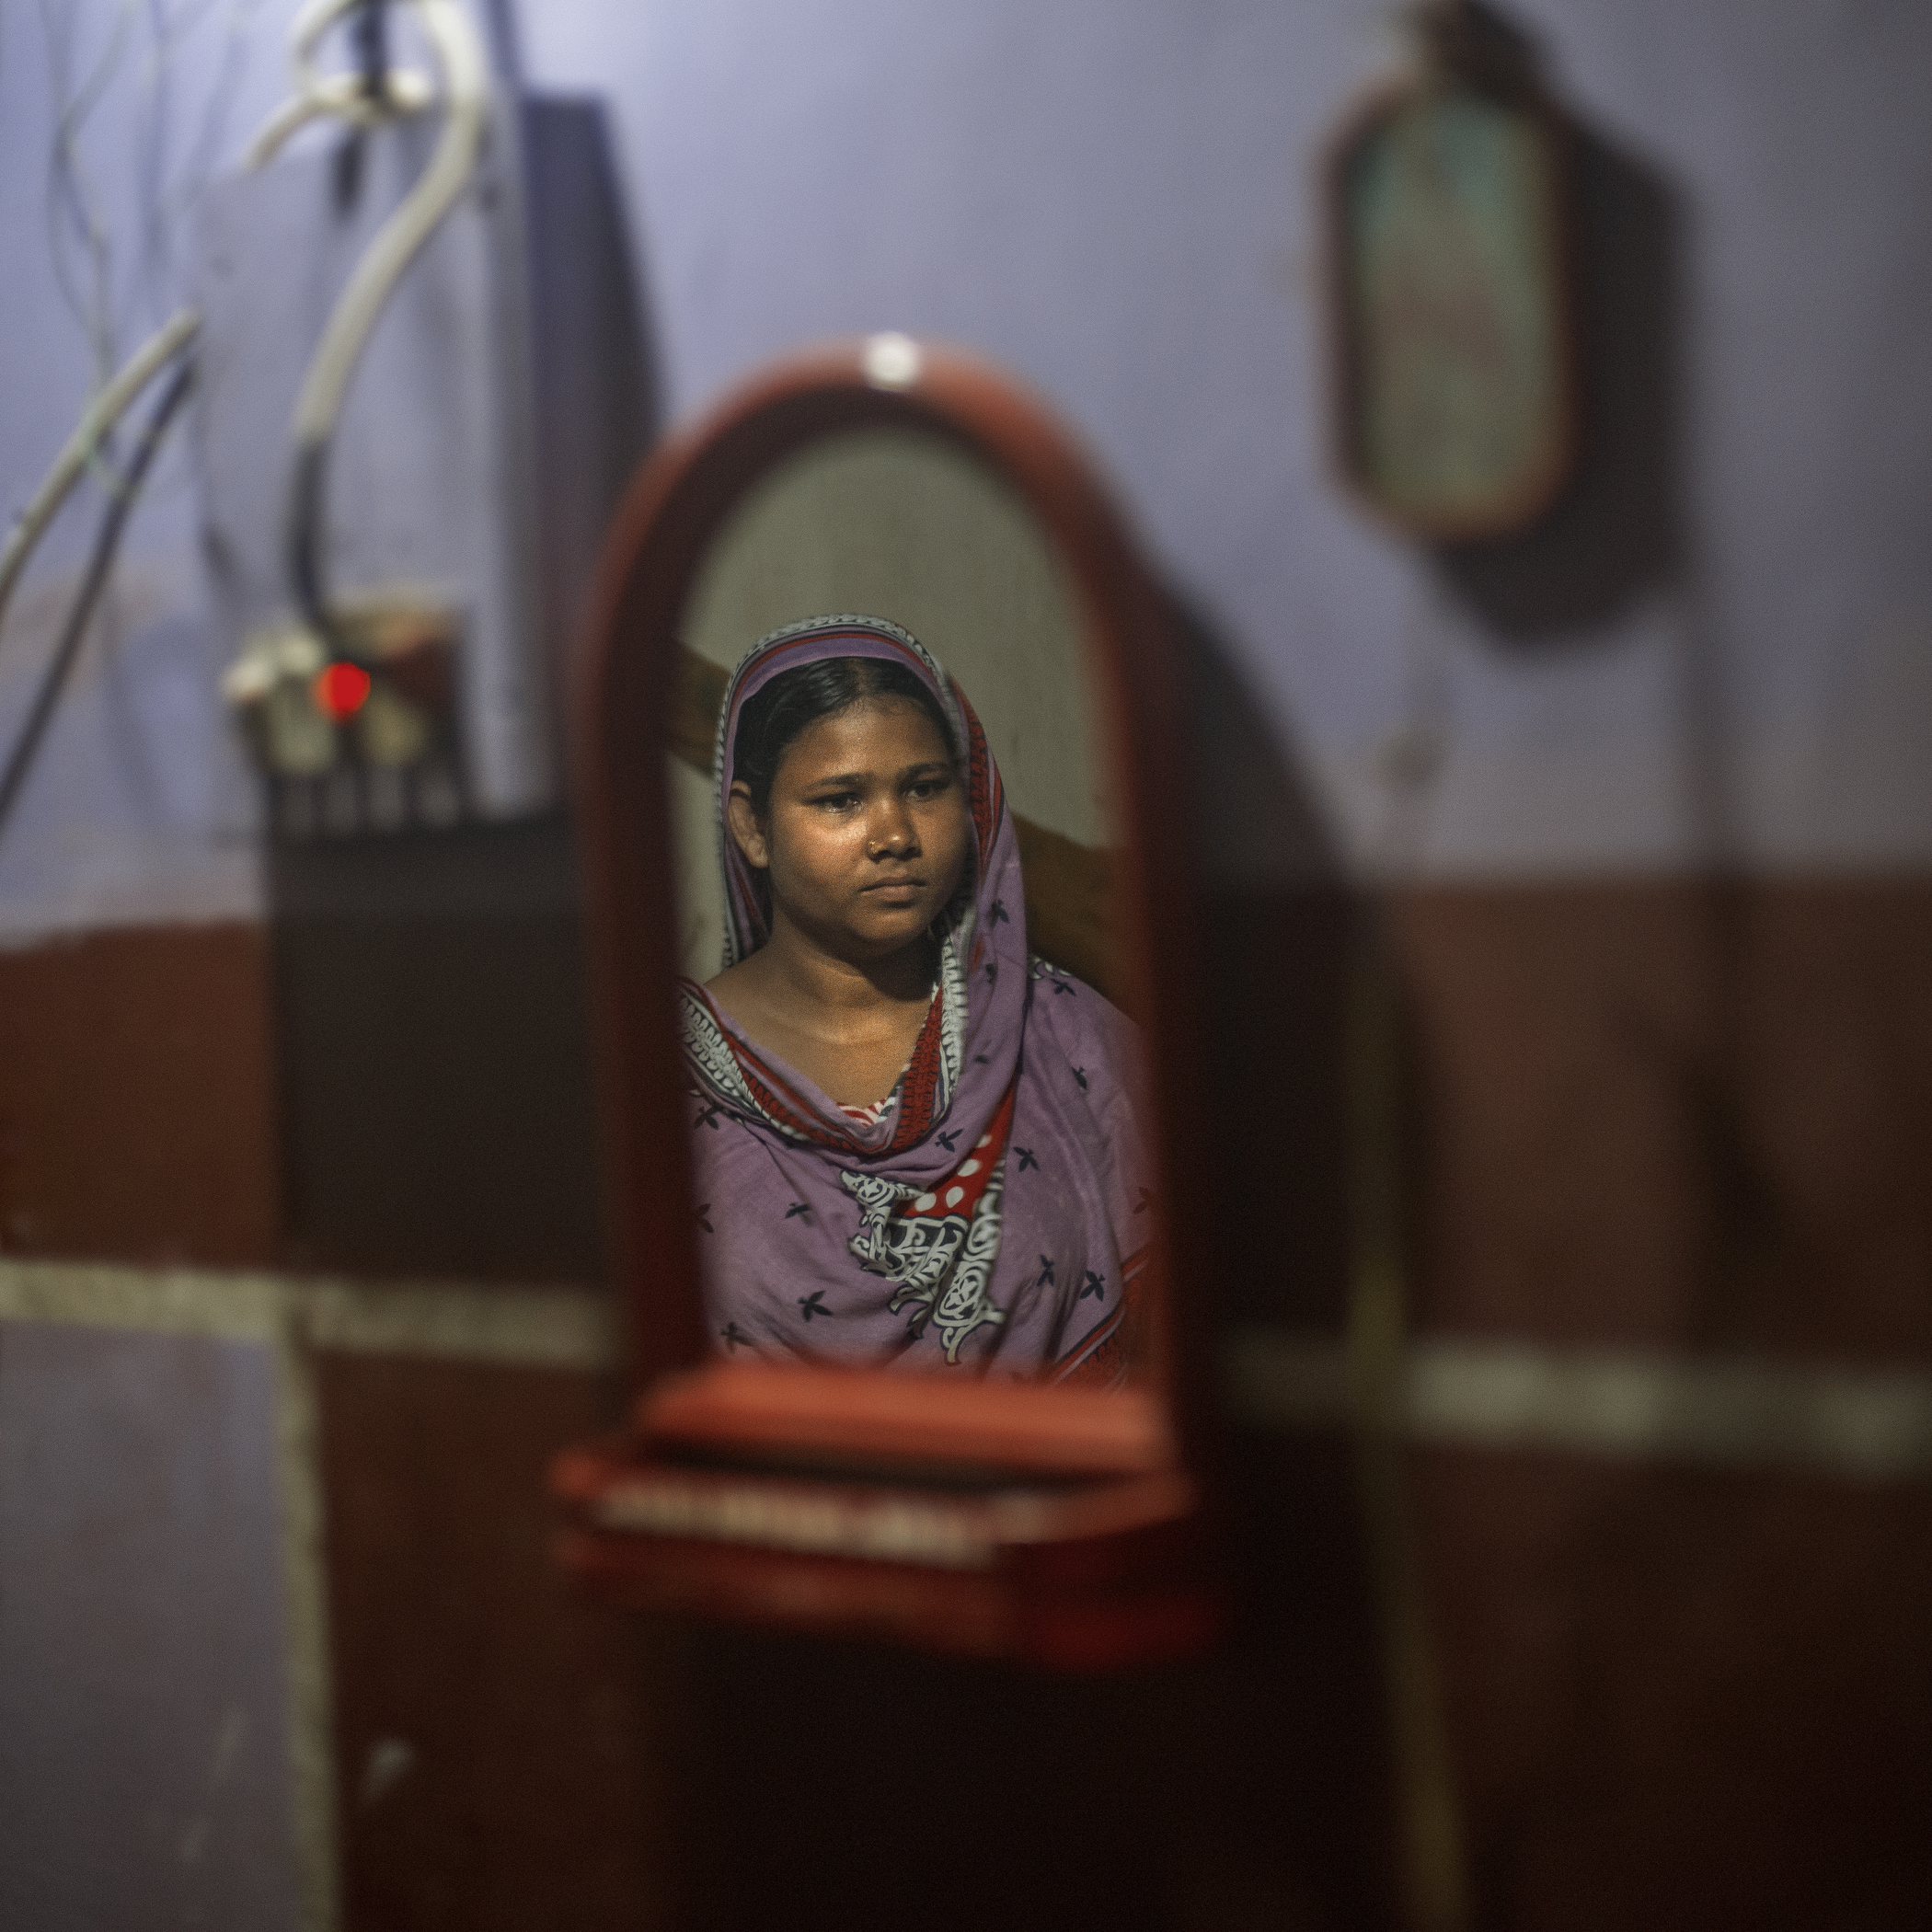 Rana plaza incident made Moushumi depressed and alone in deep inside